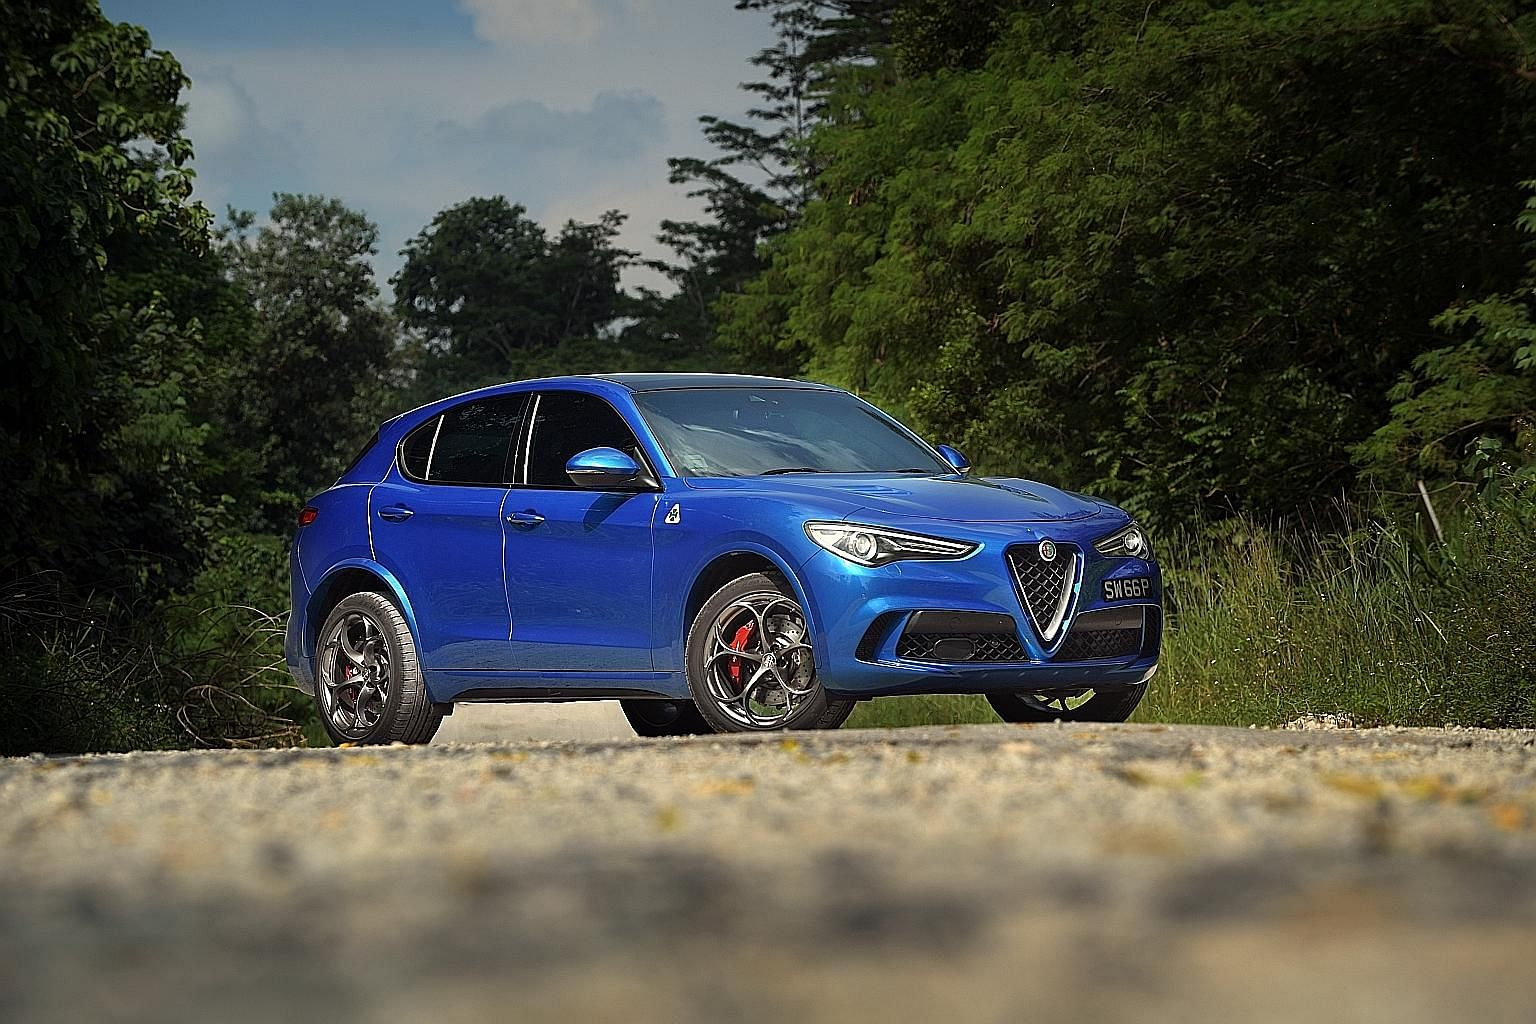 The Stelvio Quadrifoglio is Alfa Romeo's first sport utility vehicle.